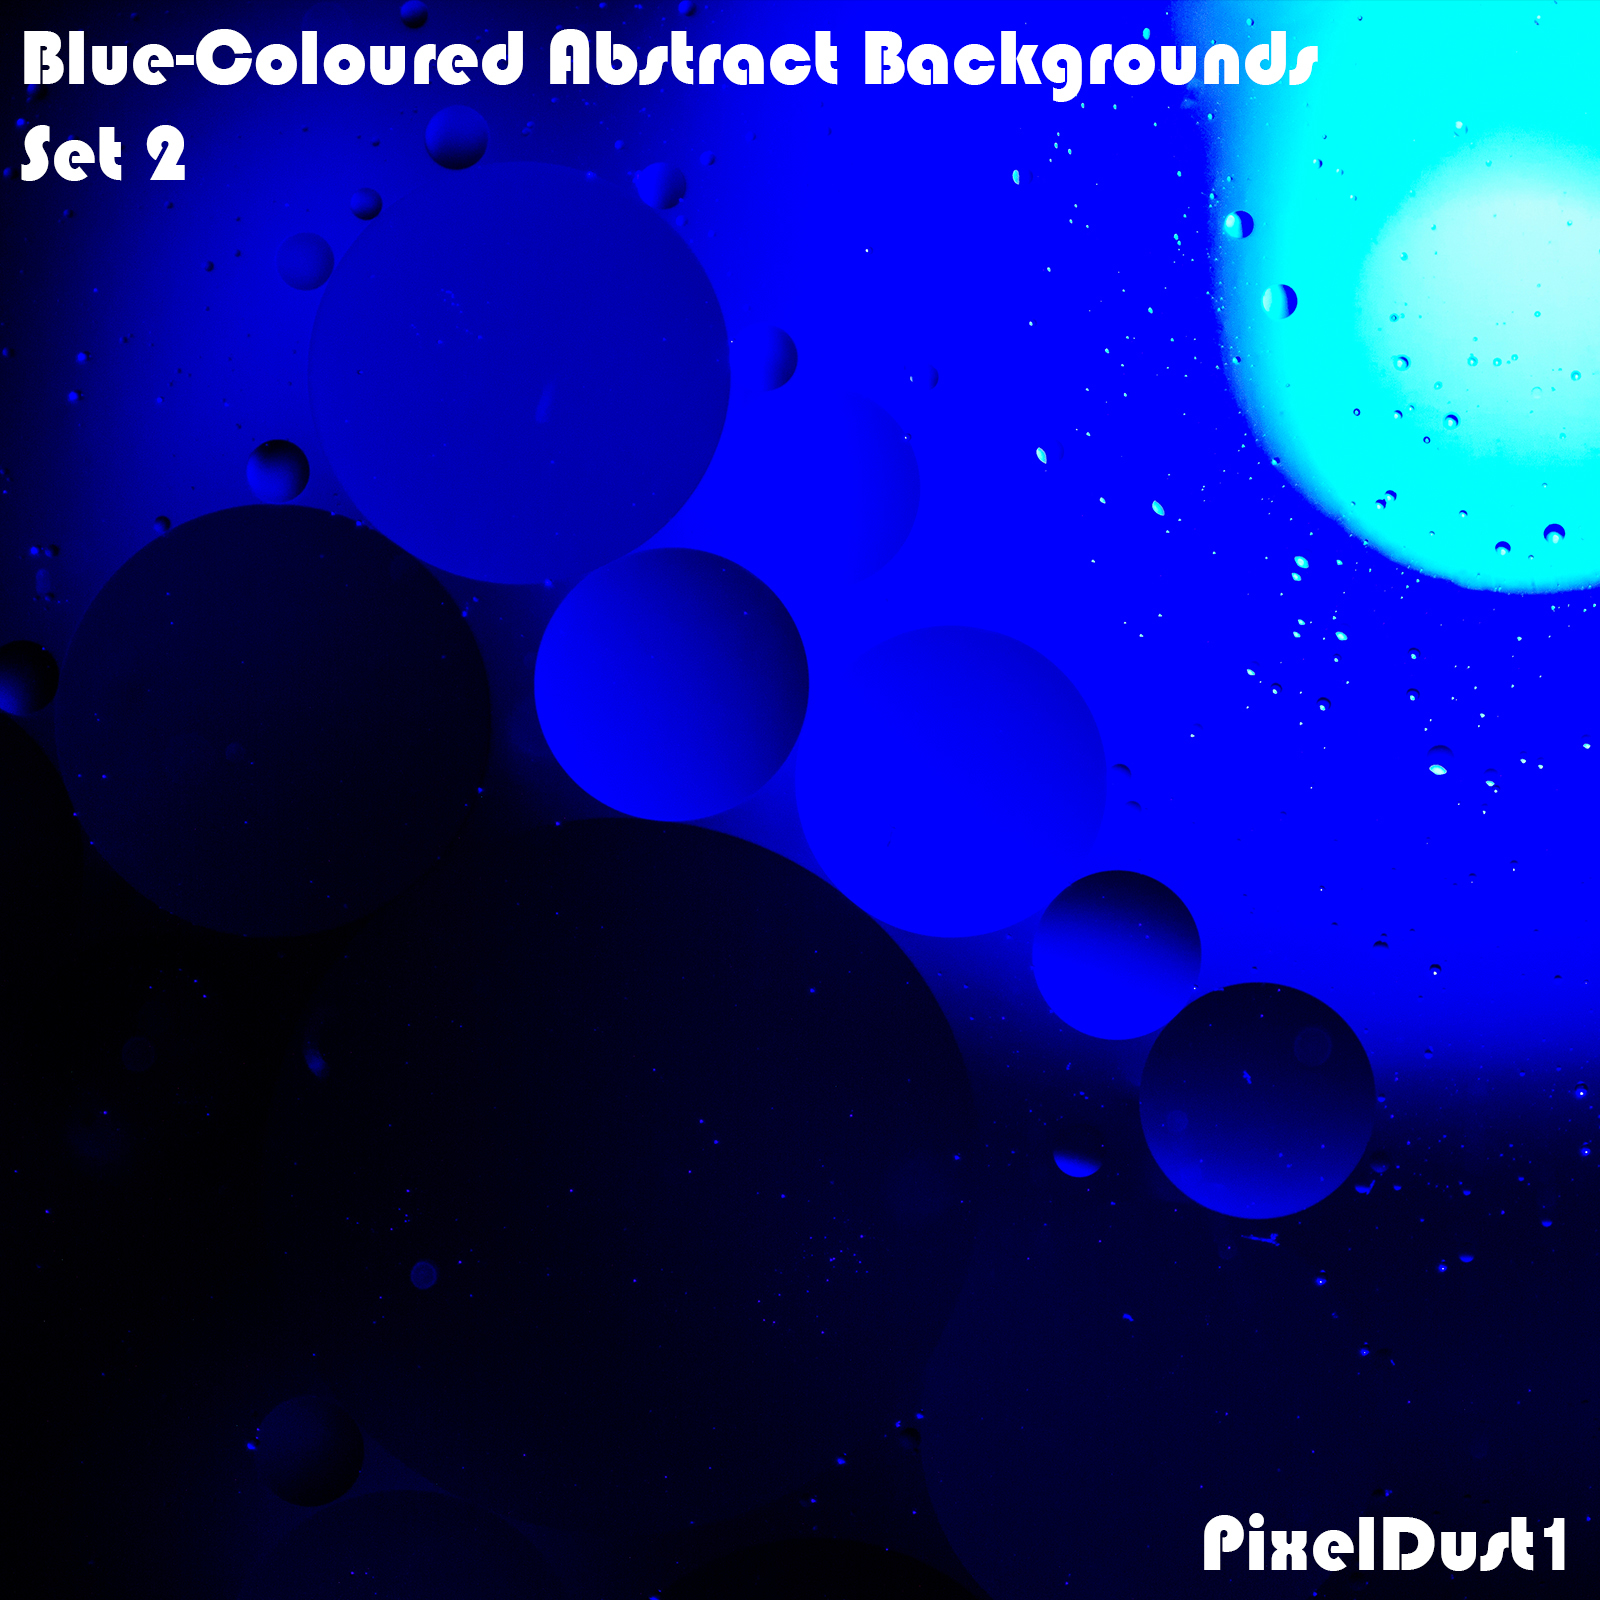 PixelDust1's Blue-Coloured Abstract Backgrounds - Set 2